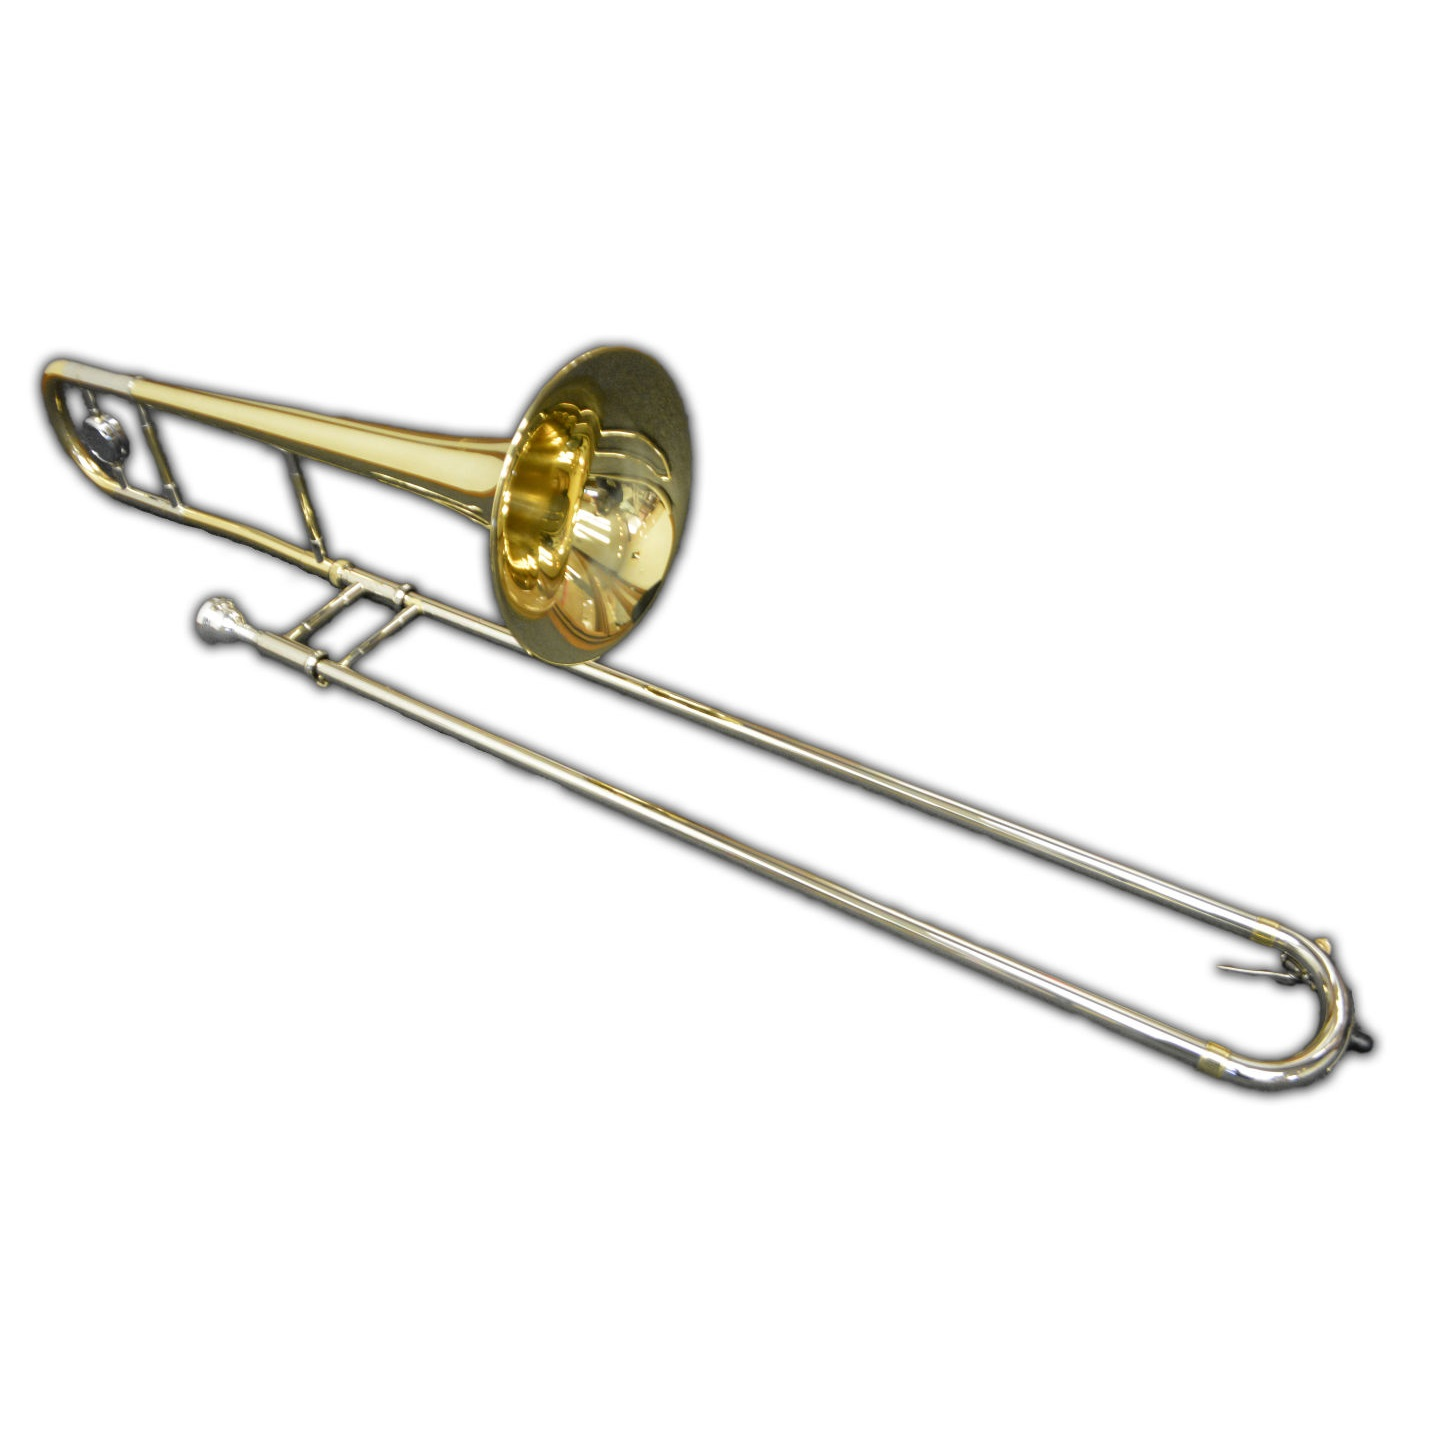 Studio Tenor .500 Trombone – Gold